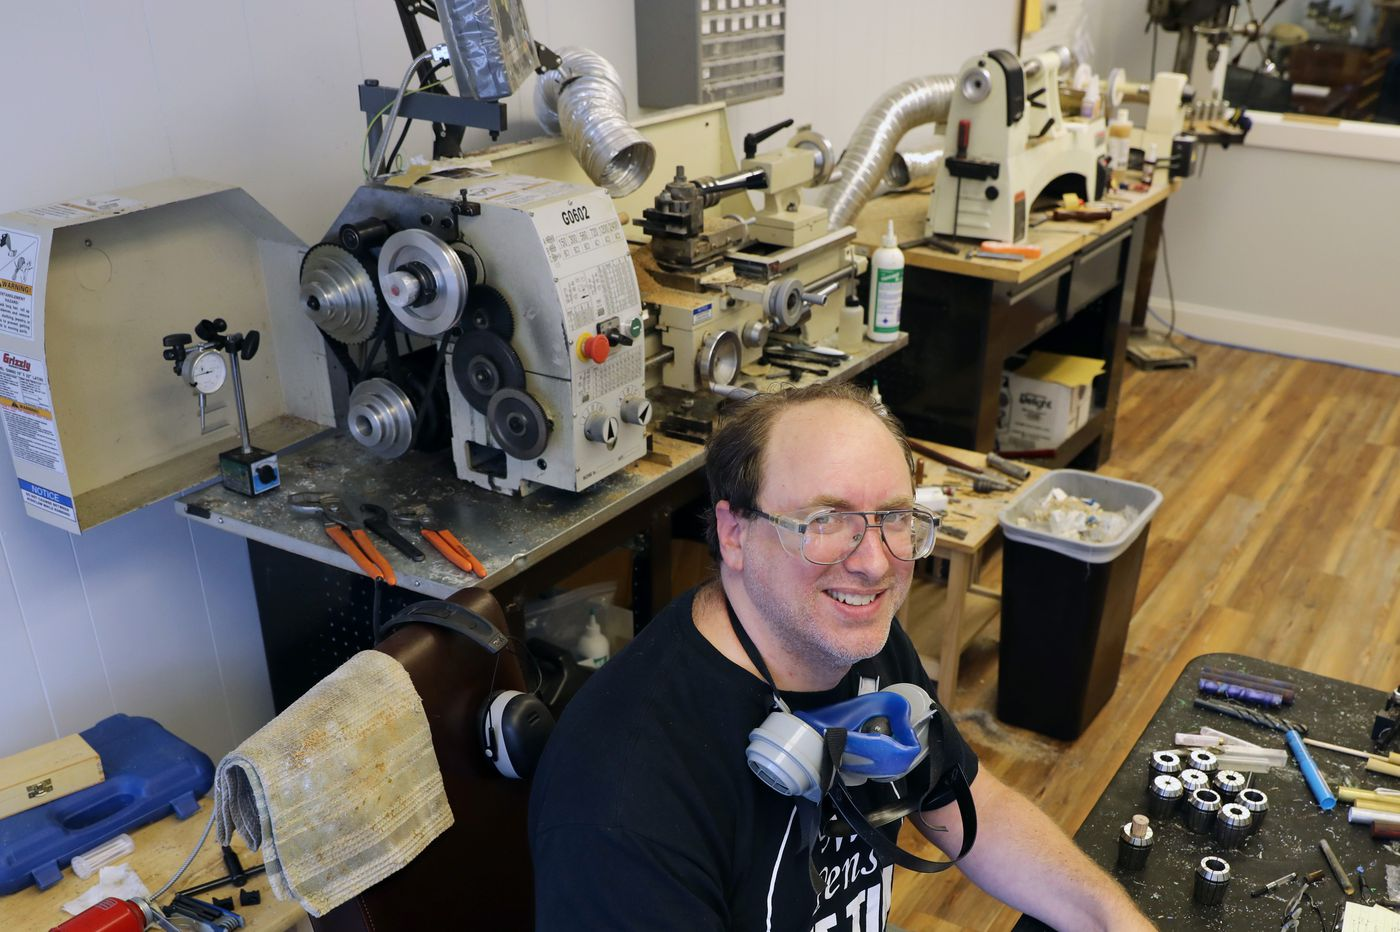 From boardwalks and White House wood, Jersey artisan makes pens for popes, presidents and posterity